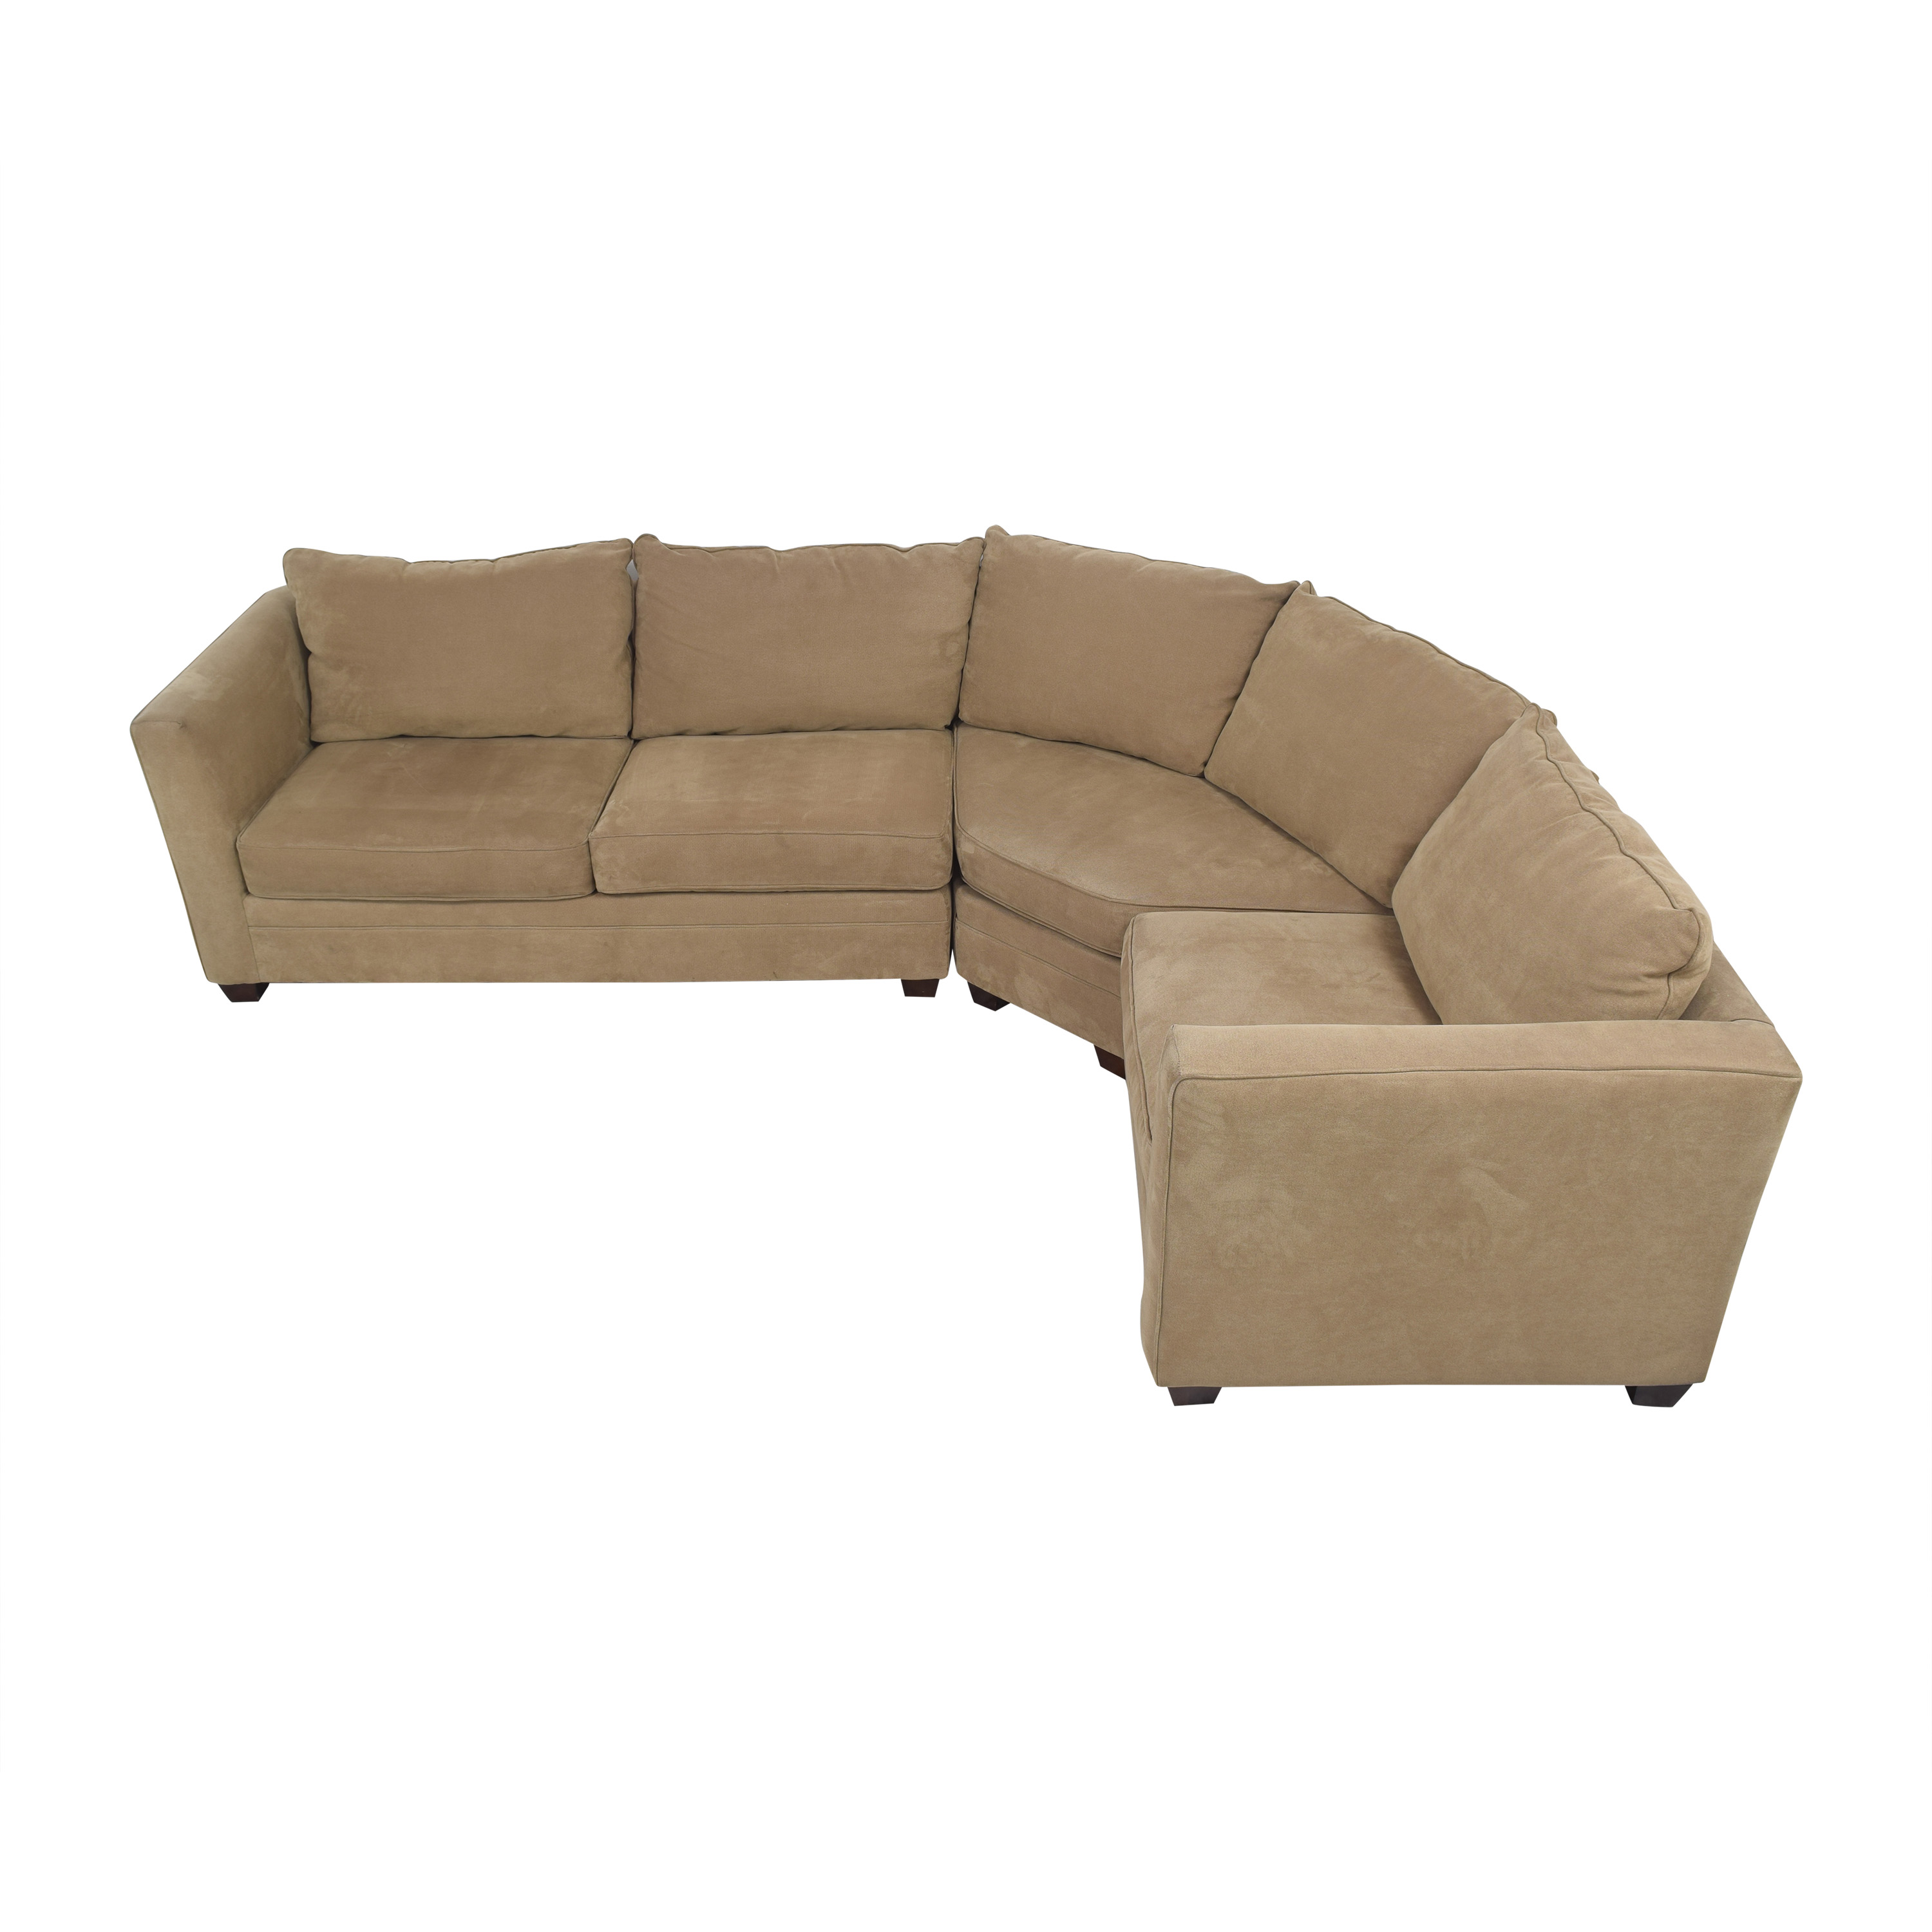 Three Piece Curved Sectional Sofa on sale